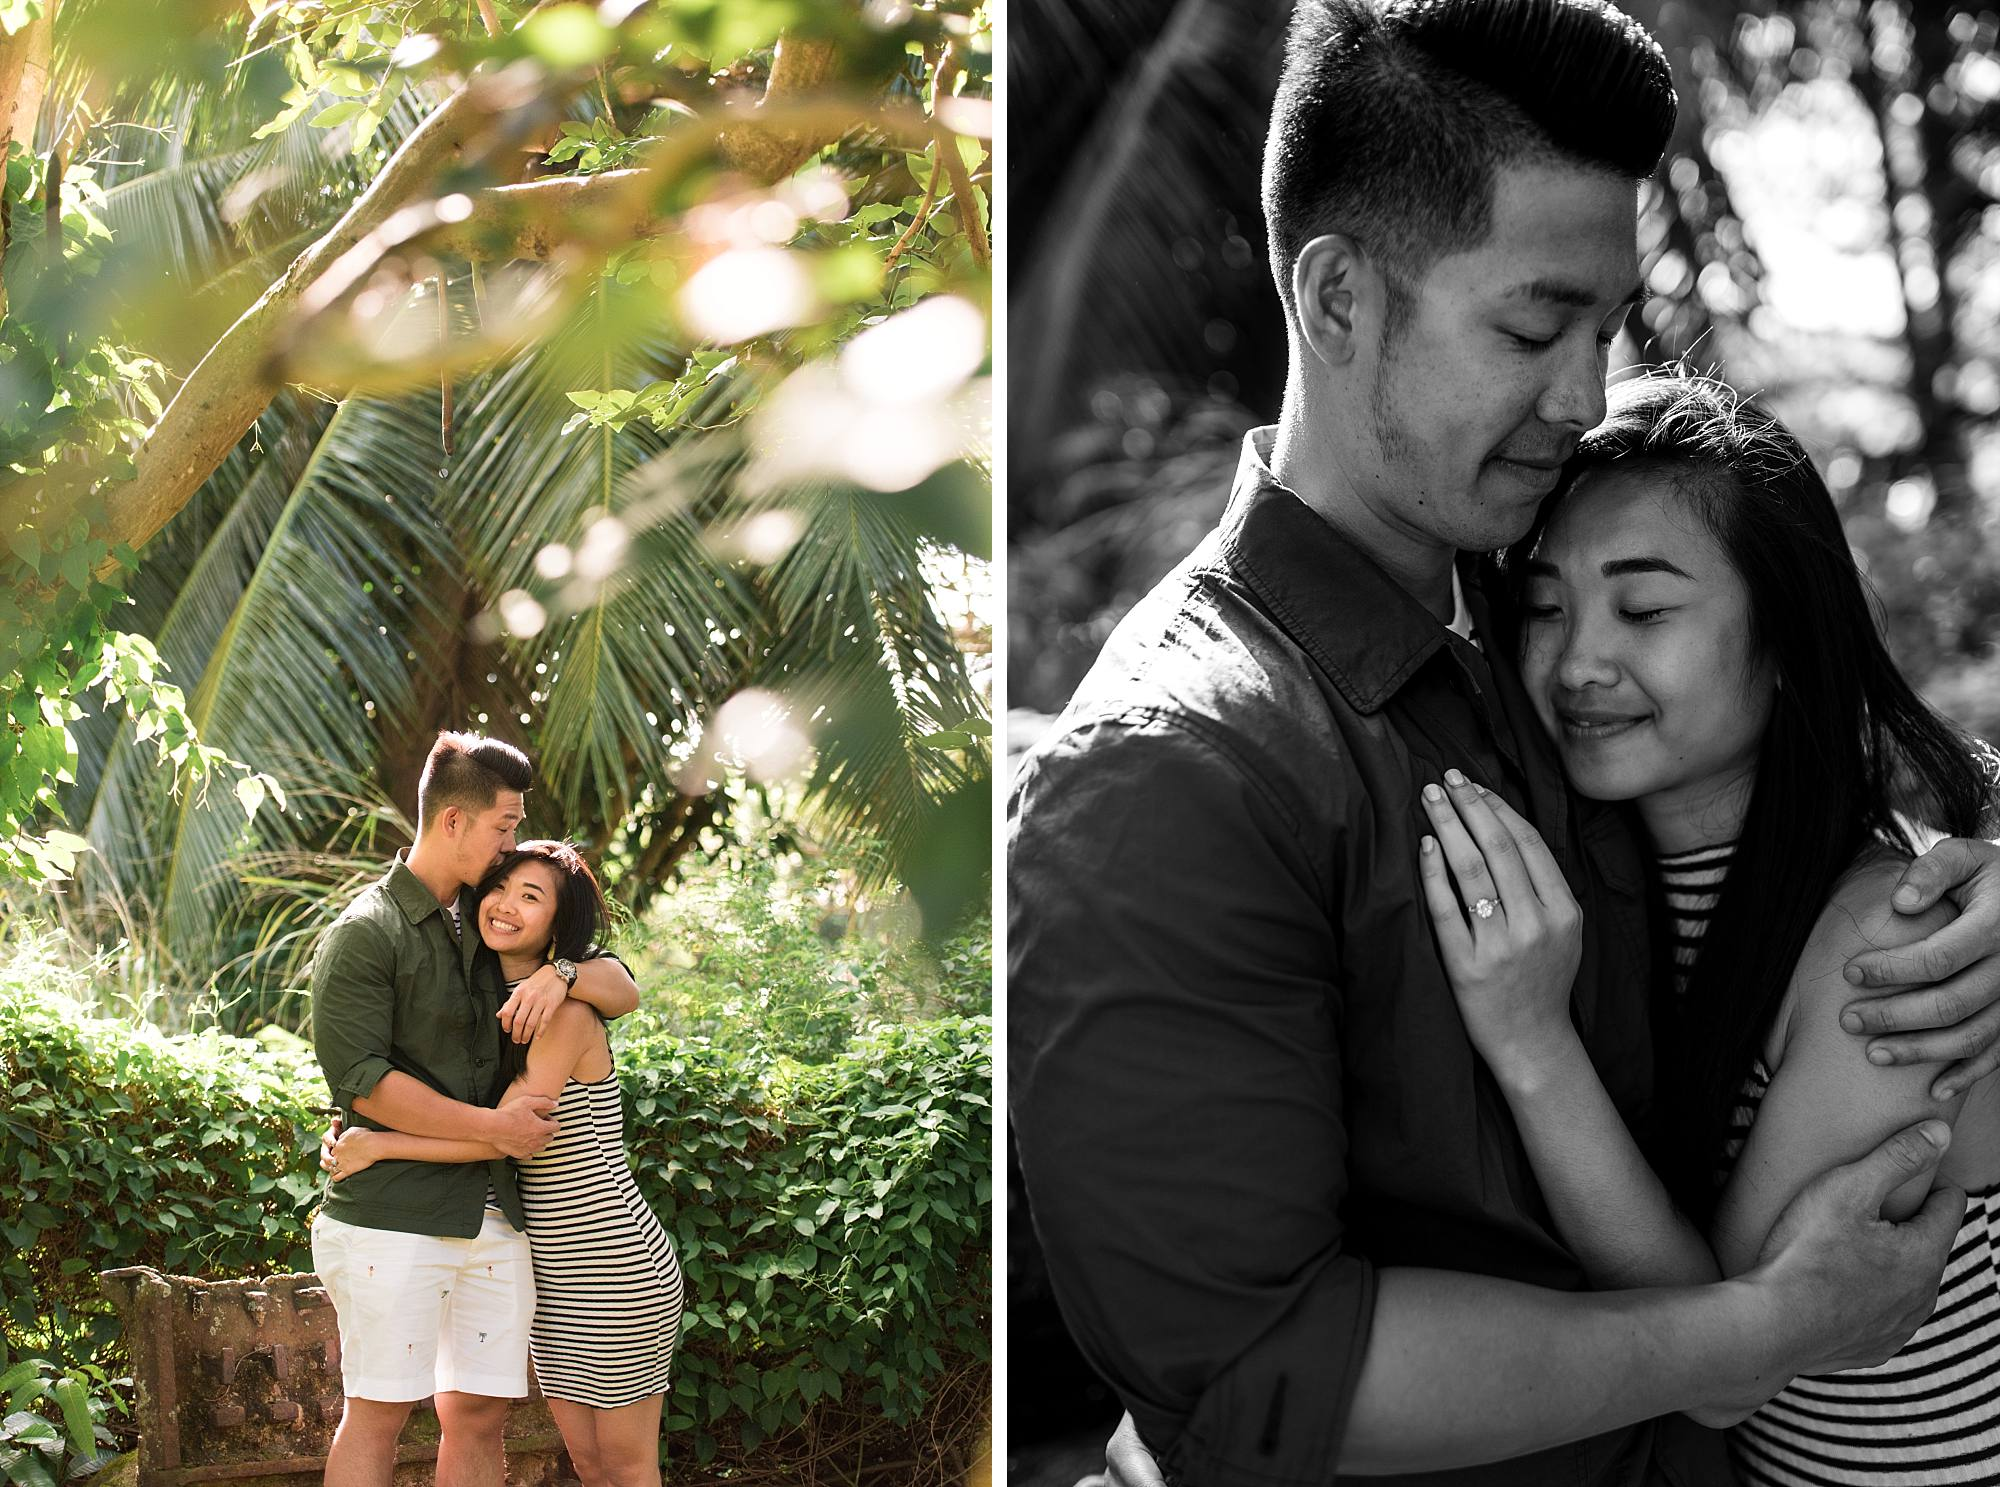 Newly engaged couple snuggling for their engagement shots